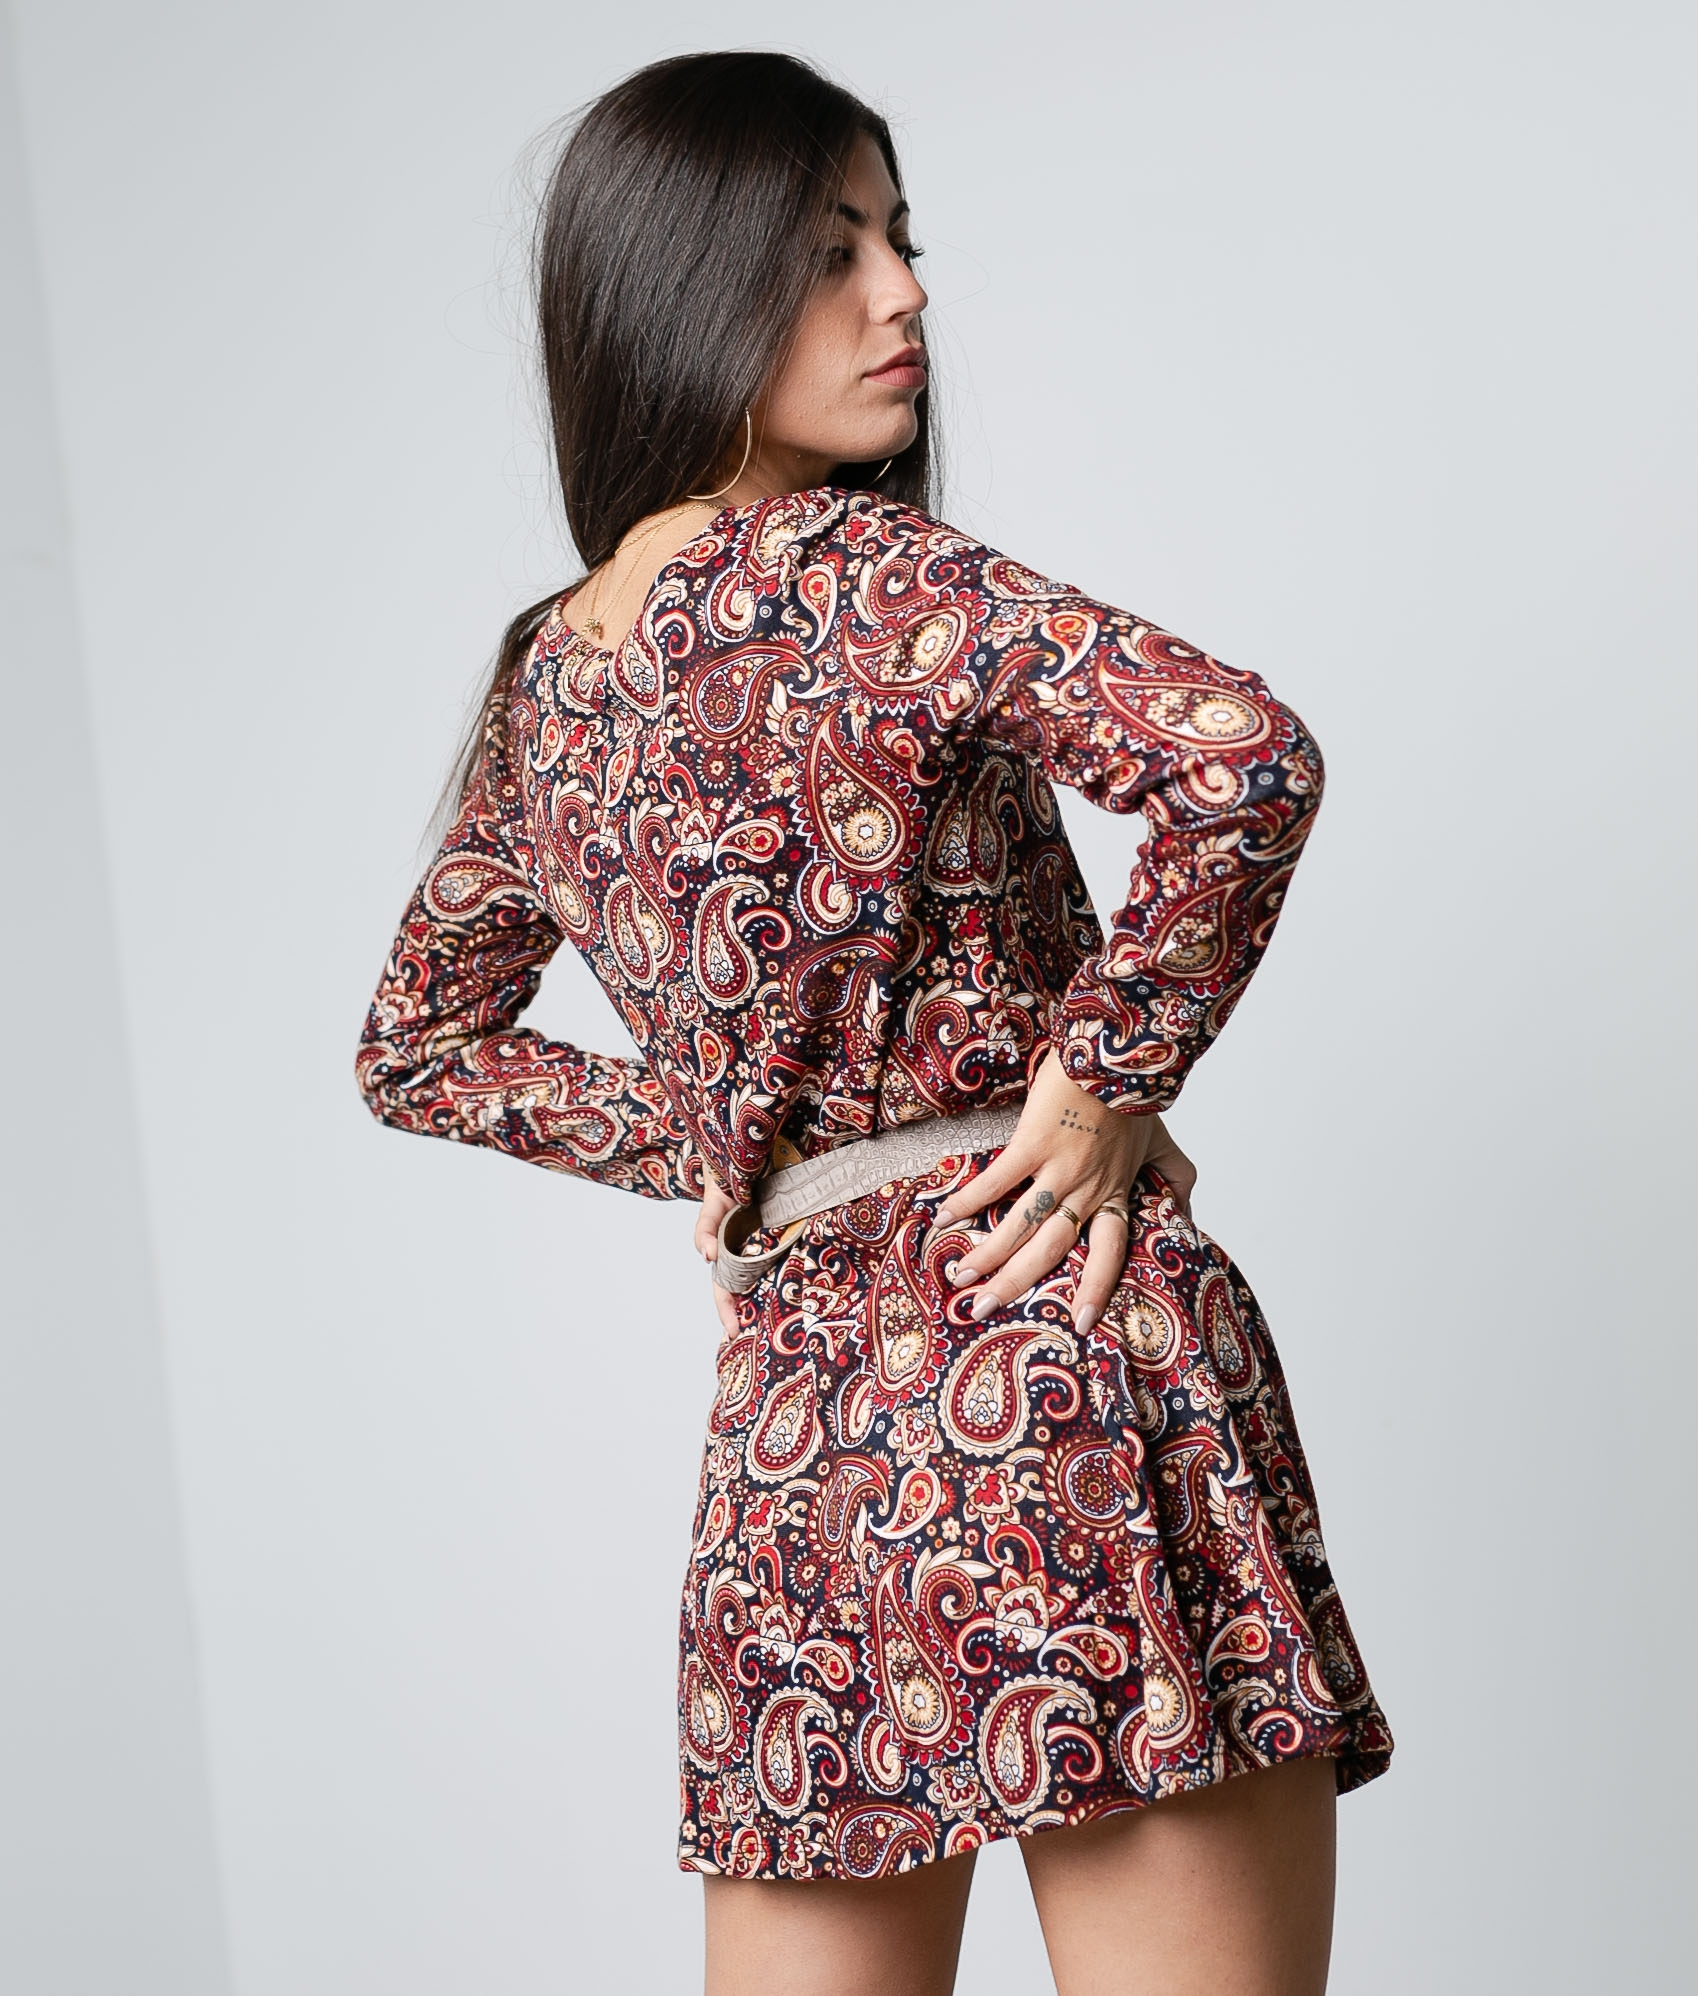 Dress Pasley - Red